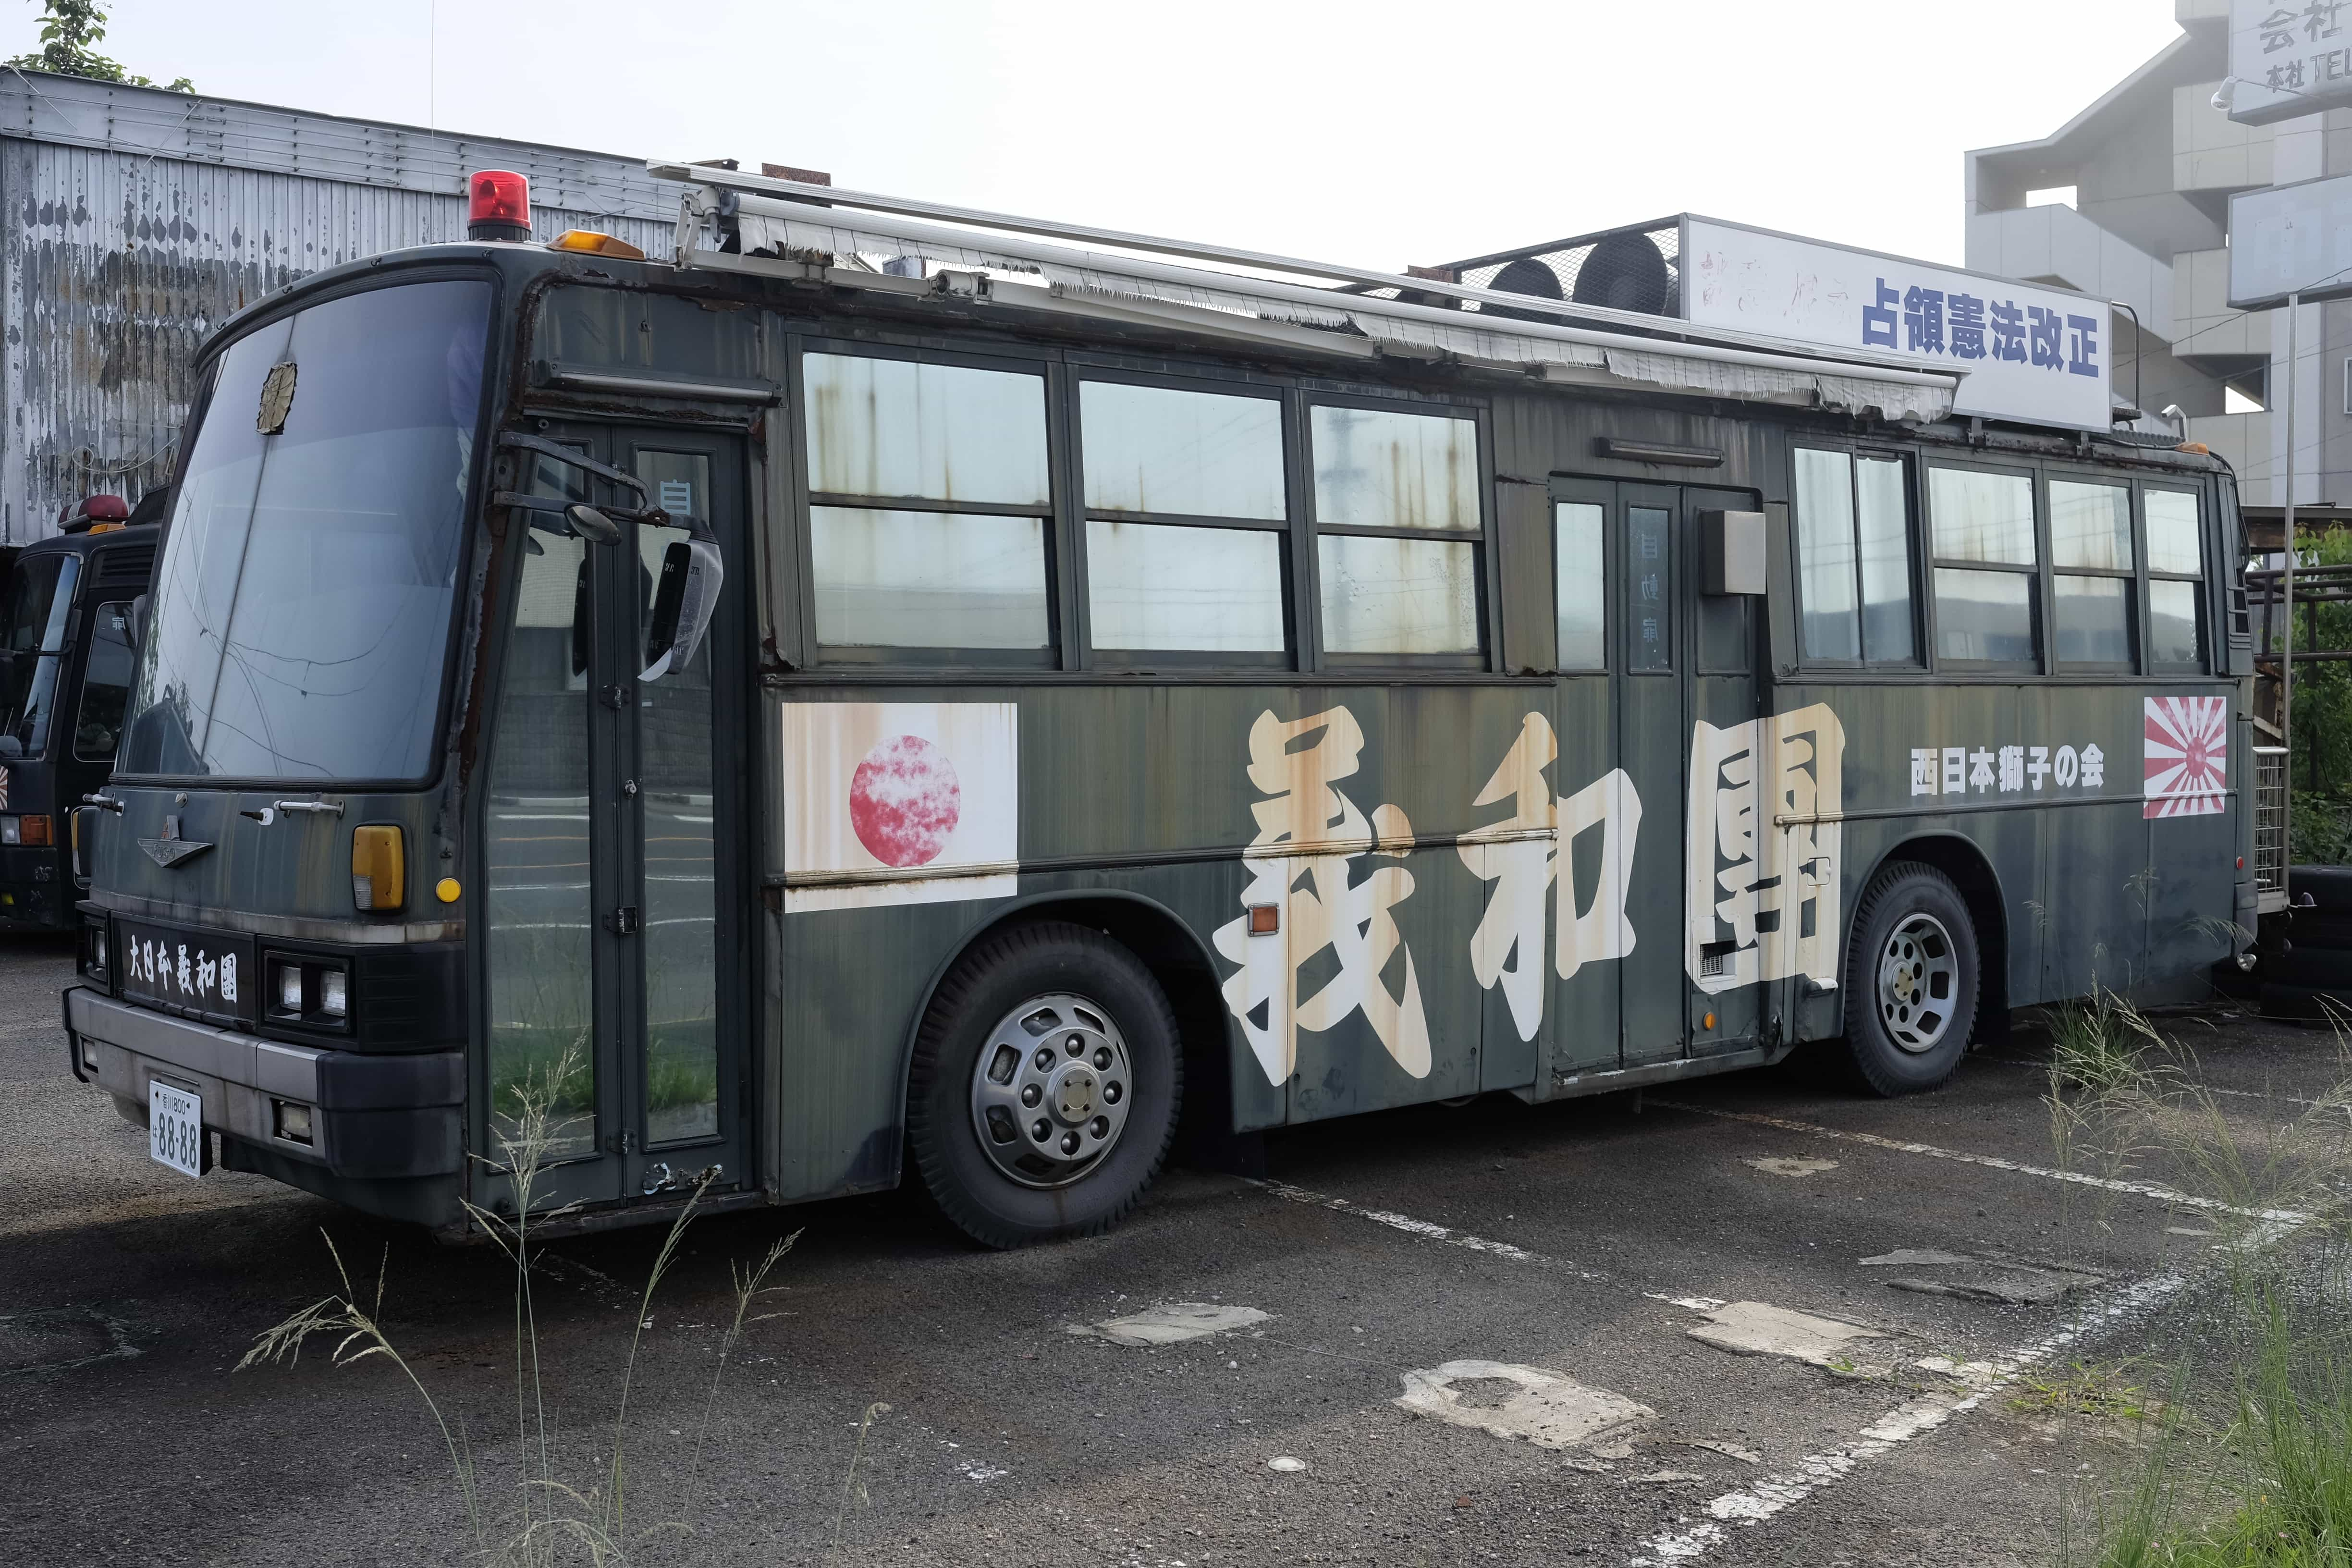 Japanese nationalist bus